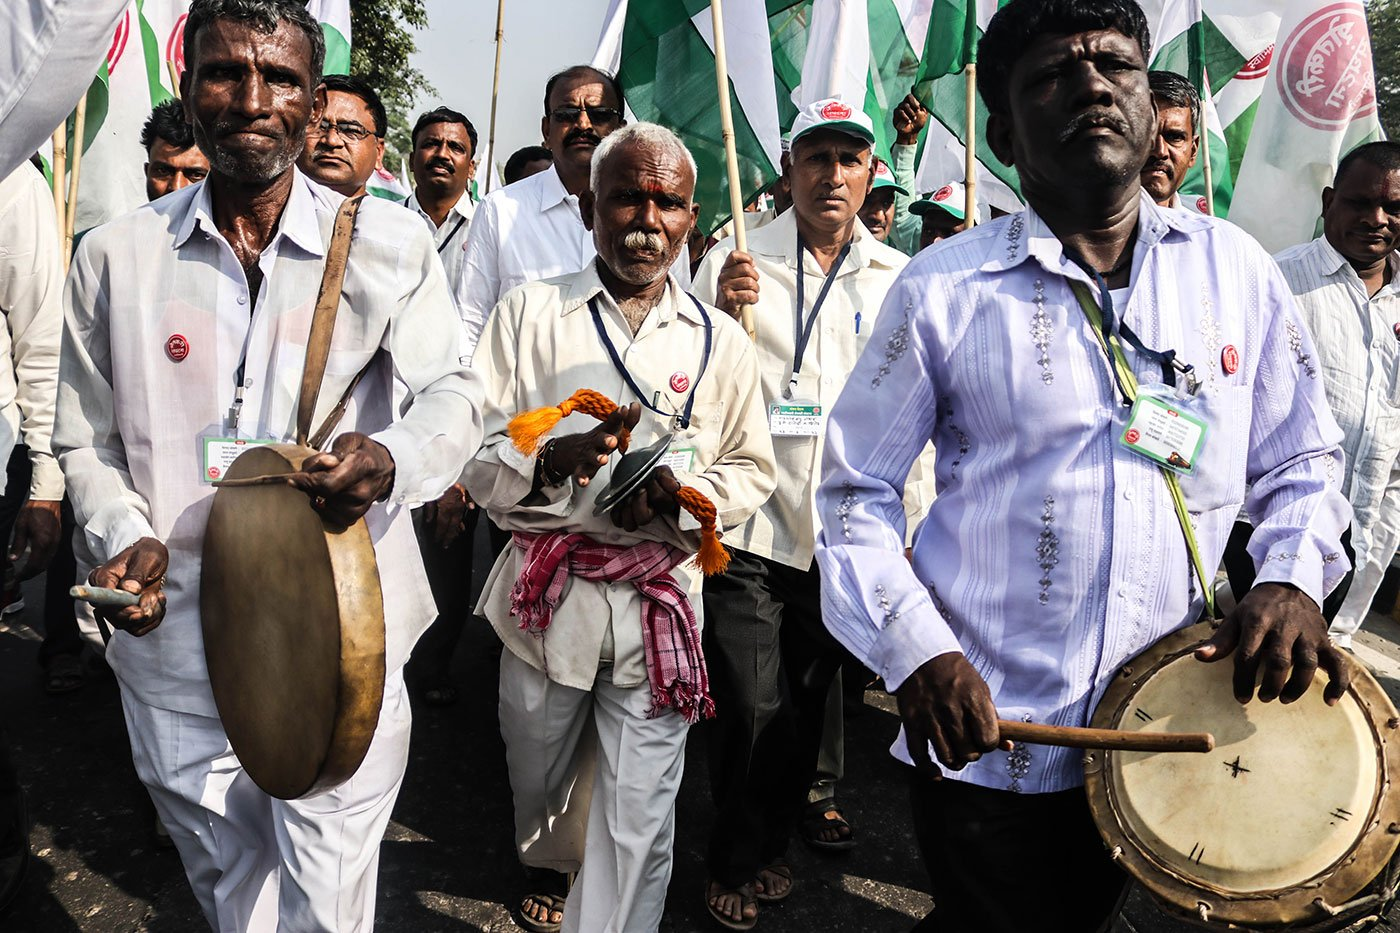 Farmers from the villages of Kolhapur district in Maharashtra playing traditional musical instruments amidst the March